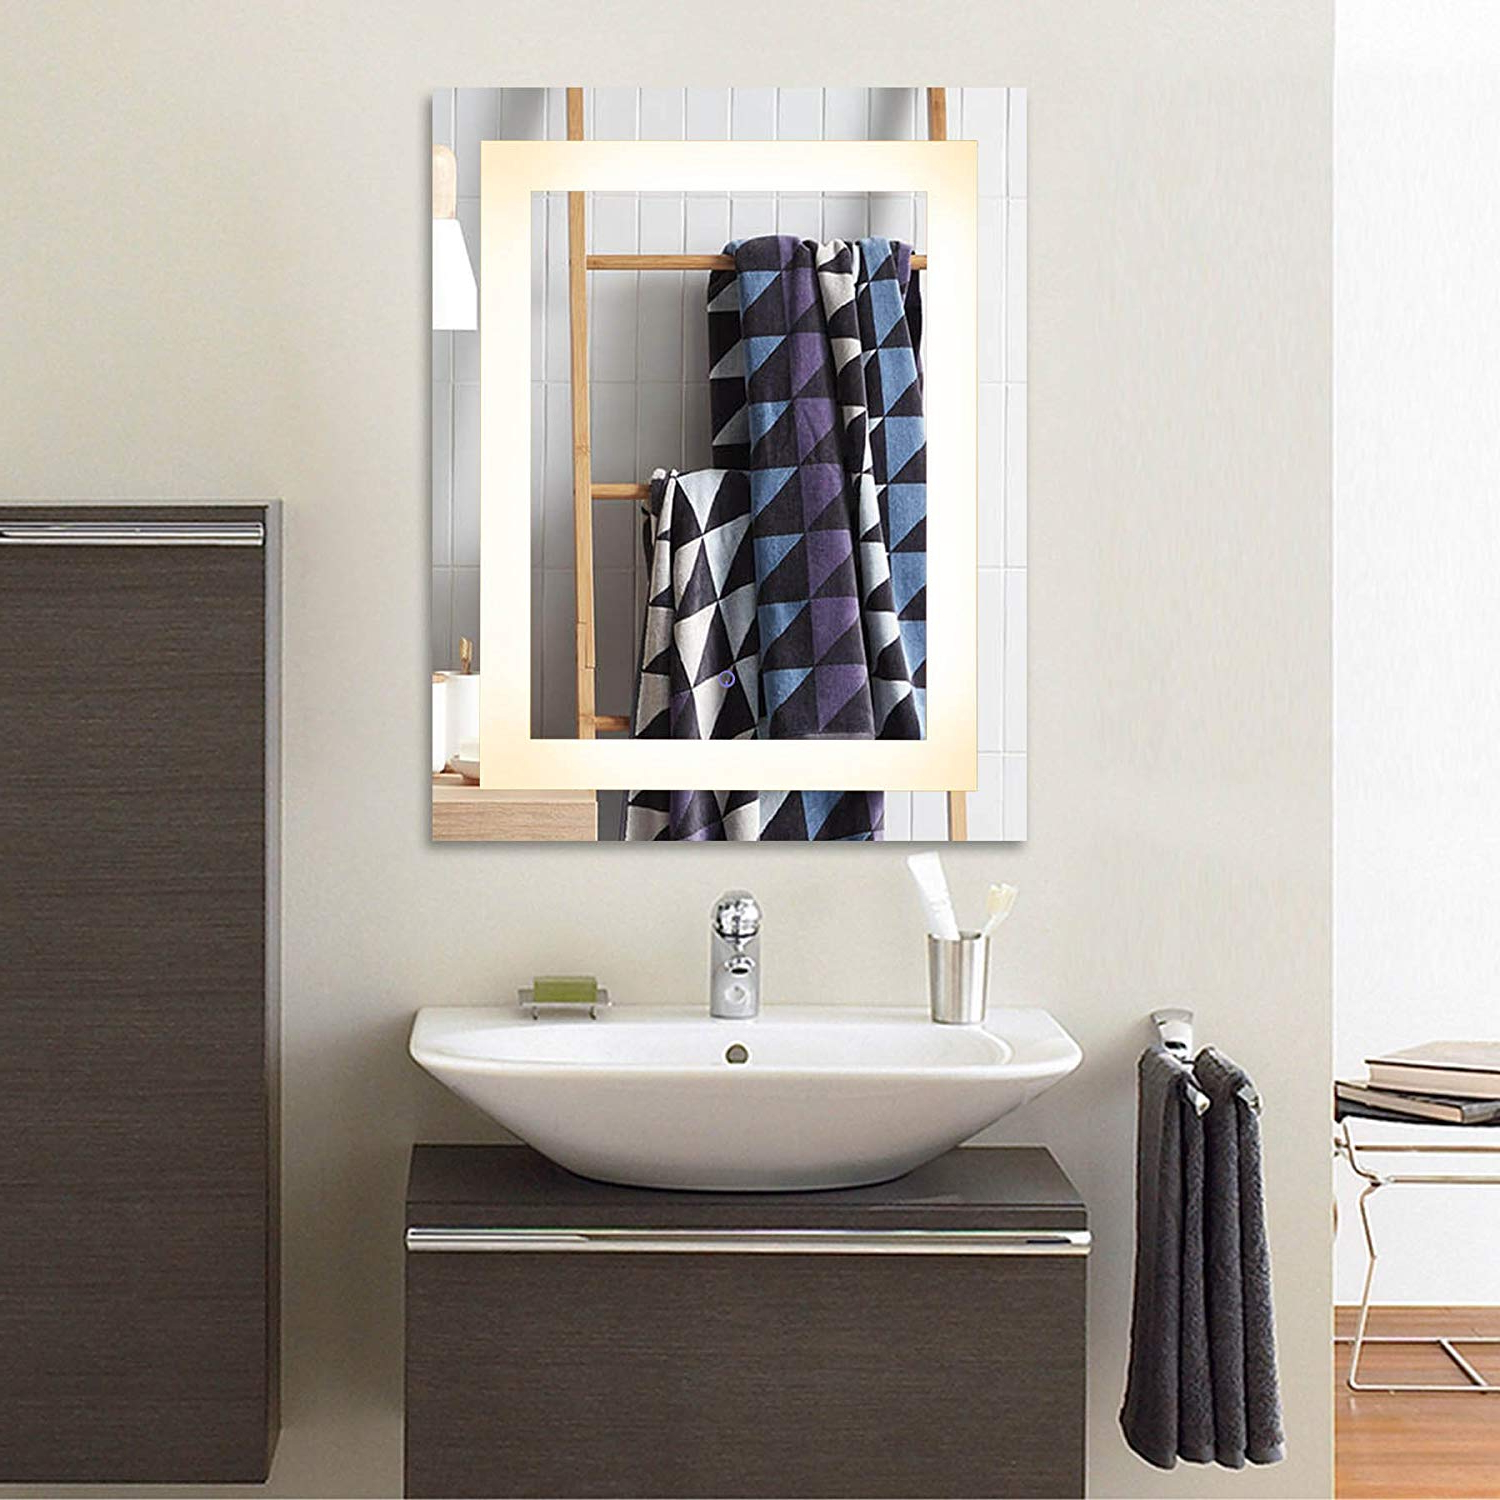 Well Liked Details About Co Z Modern Led Bathroom Mirror, Dimmable Rectangle Lighted Wall Mirror With Pertaining To Lighted Wall Mirrors For Bathrooms (View 8 of 20)